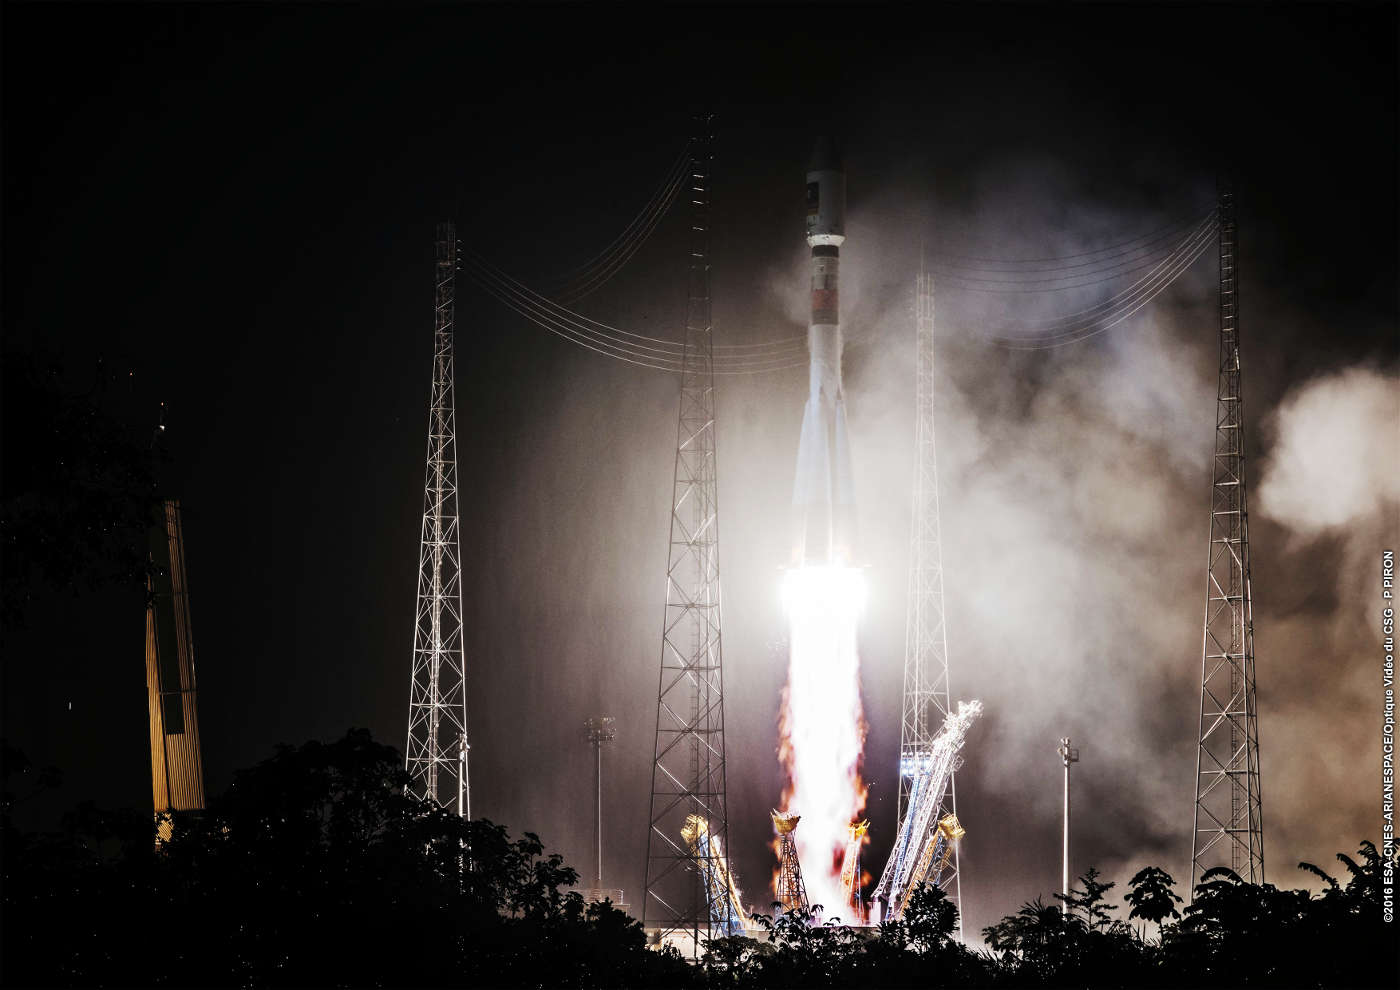 Lift-off galileo 13 and 13 from Kourou over a Soyuz Rocket